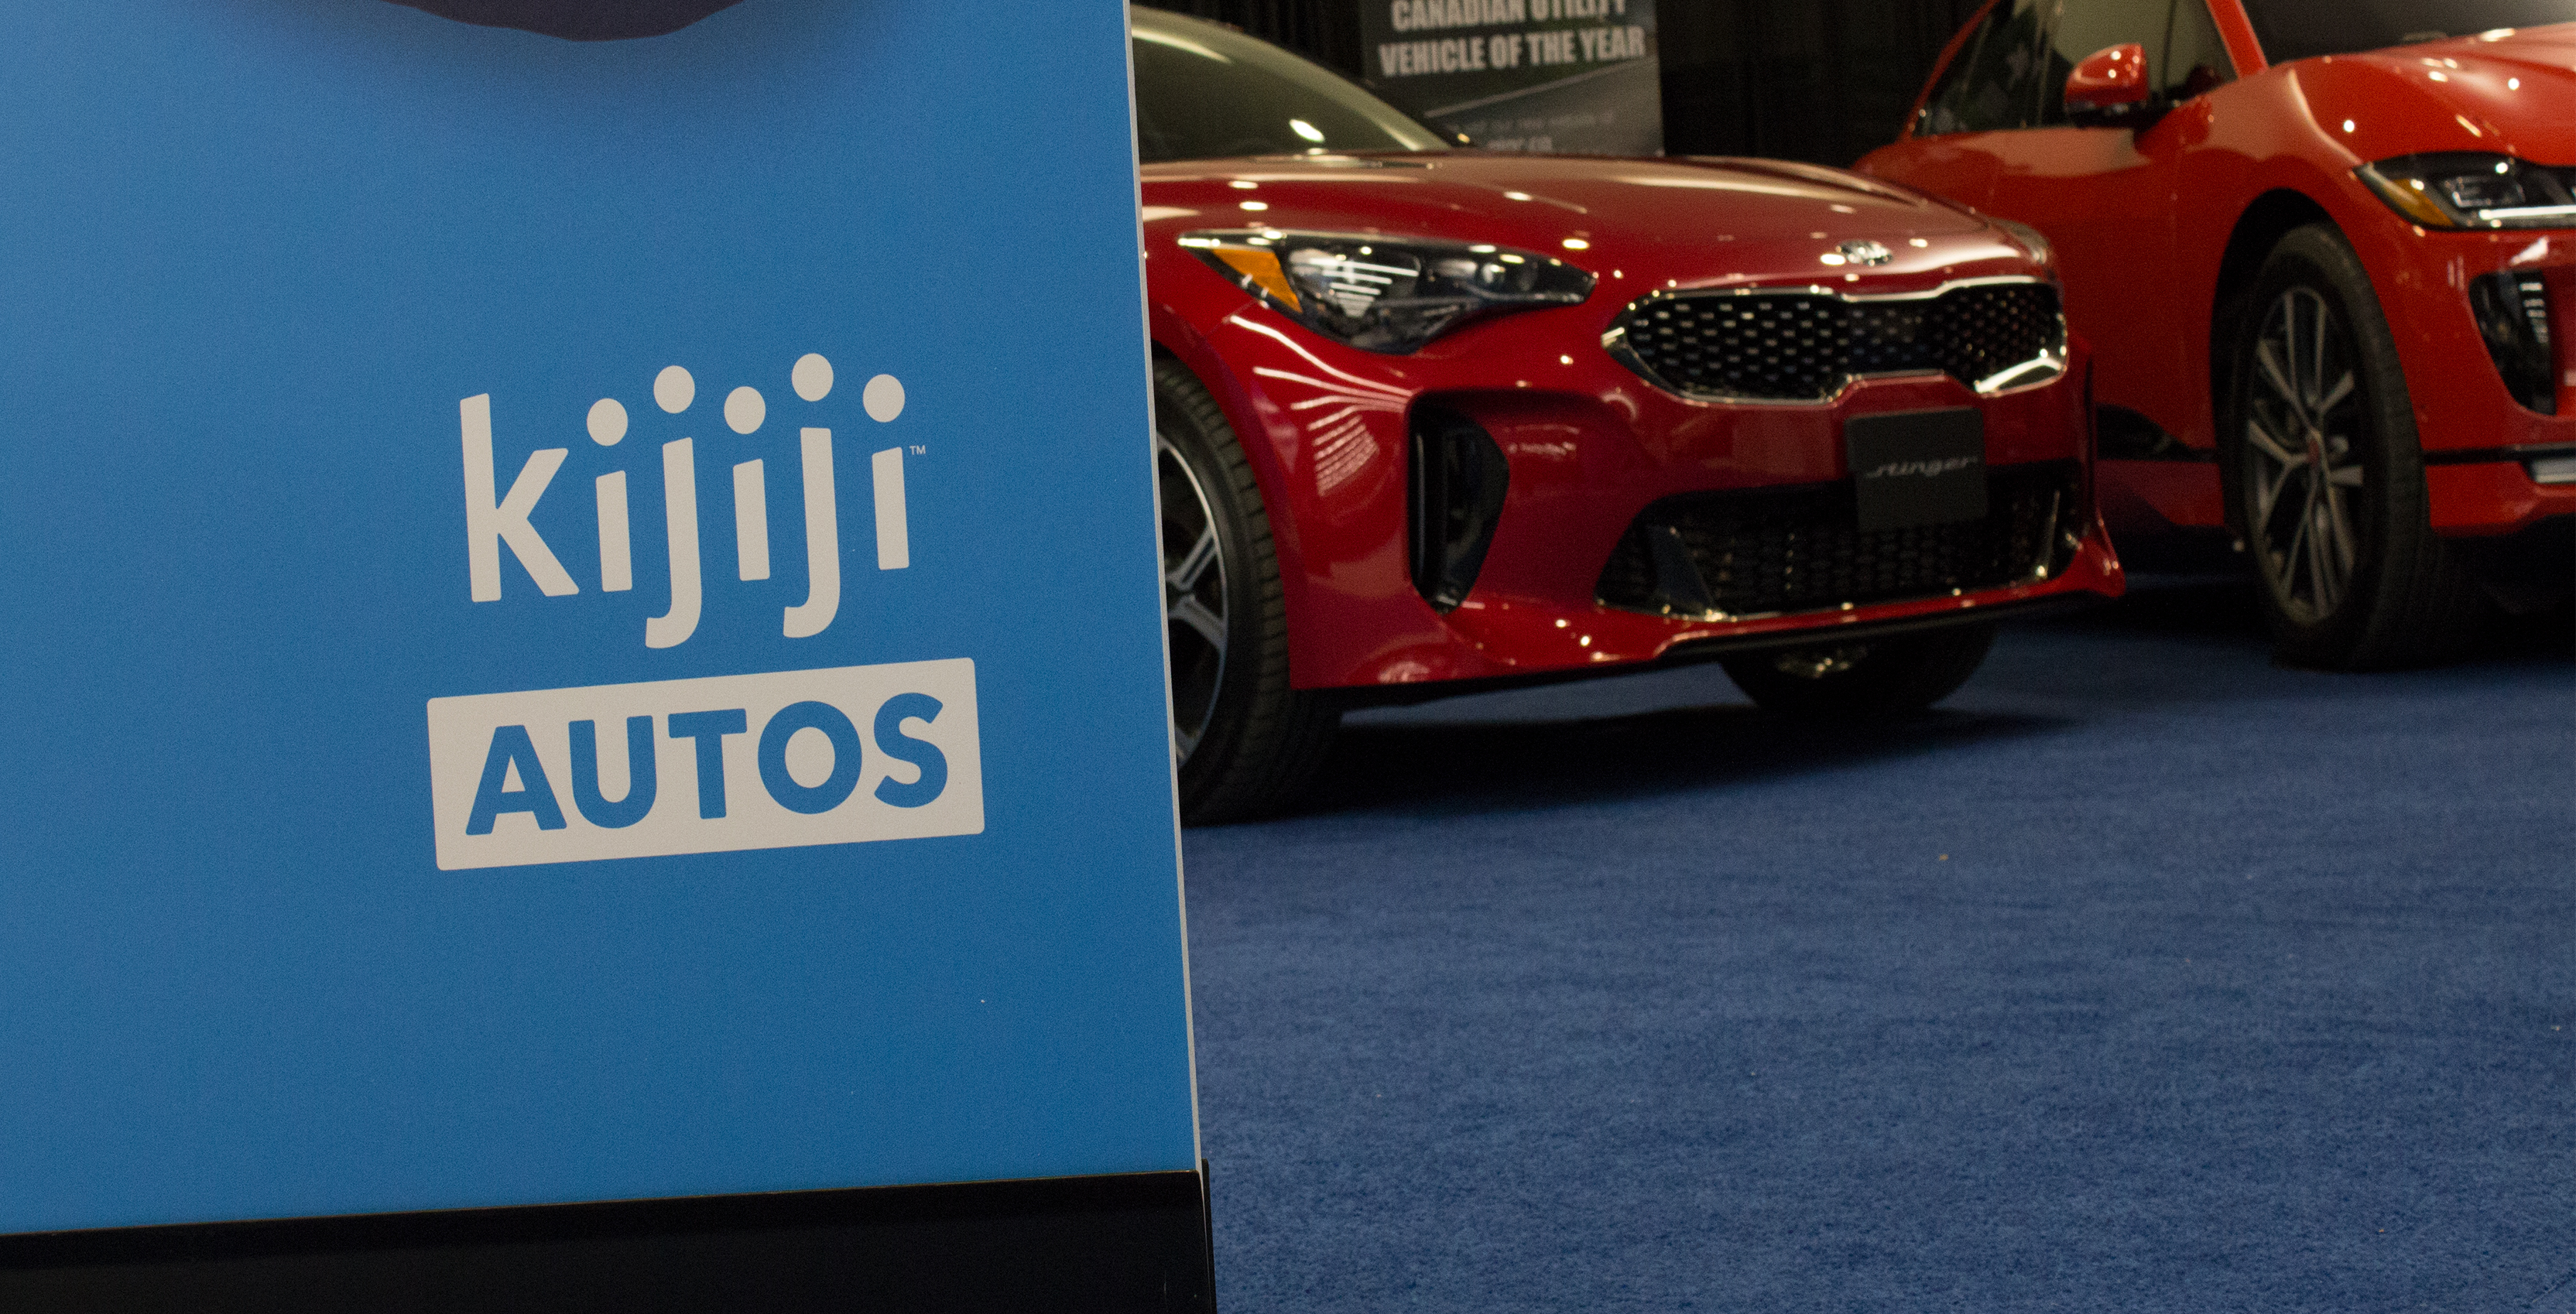 Kijiji autos aims to gain more traction in canada